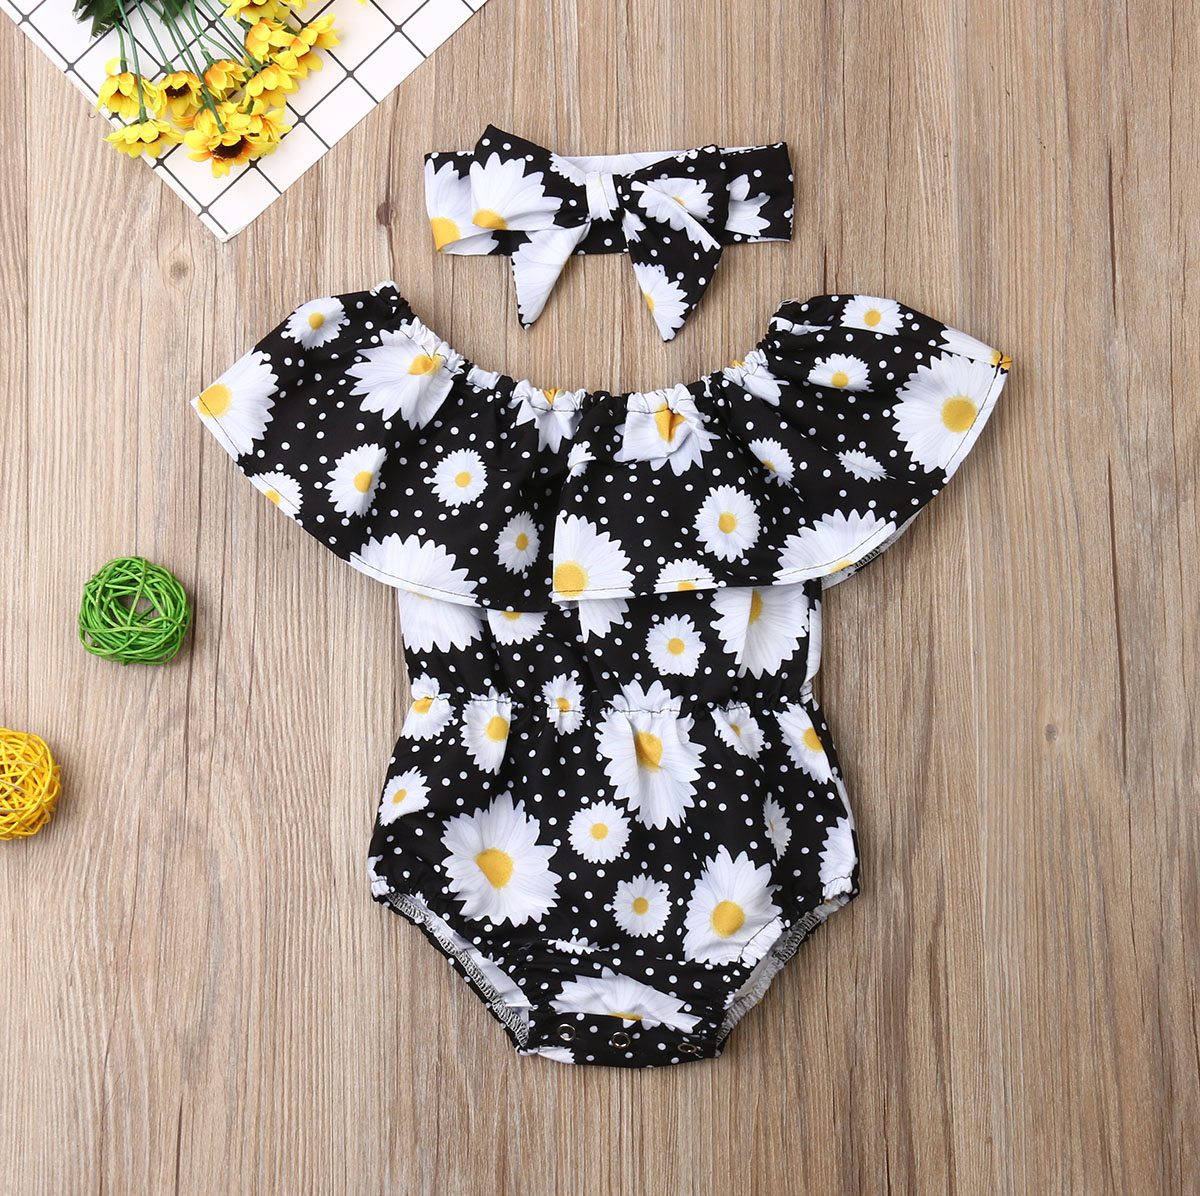 Pudcoco Newborn Baby Girl Clothes Sunflower Print Off Shoulder Ruffle Romper Jumpsuit Headband 2Pcs Outfits Cotton Clothes